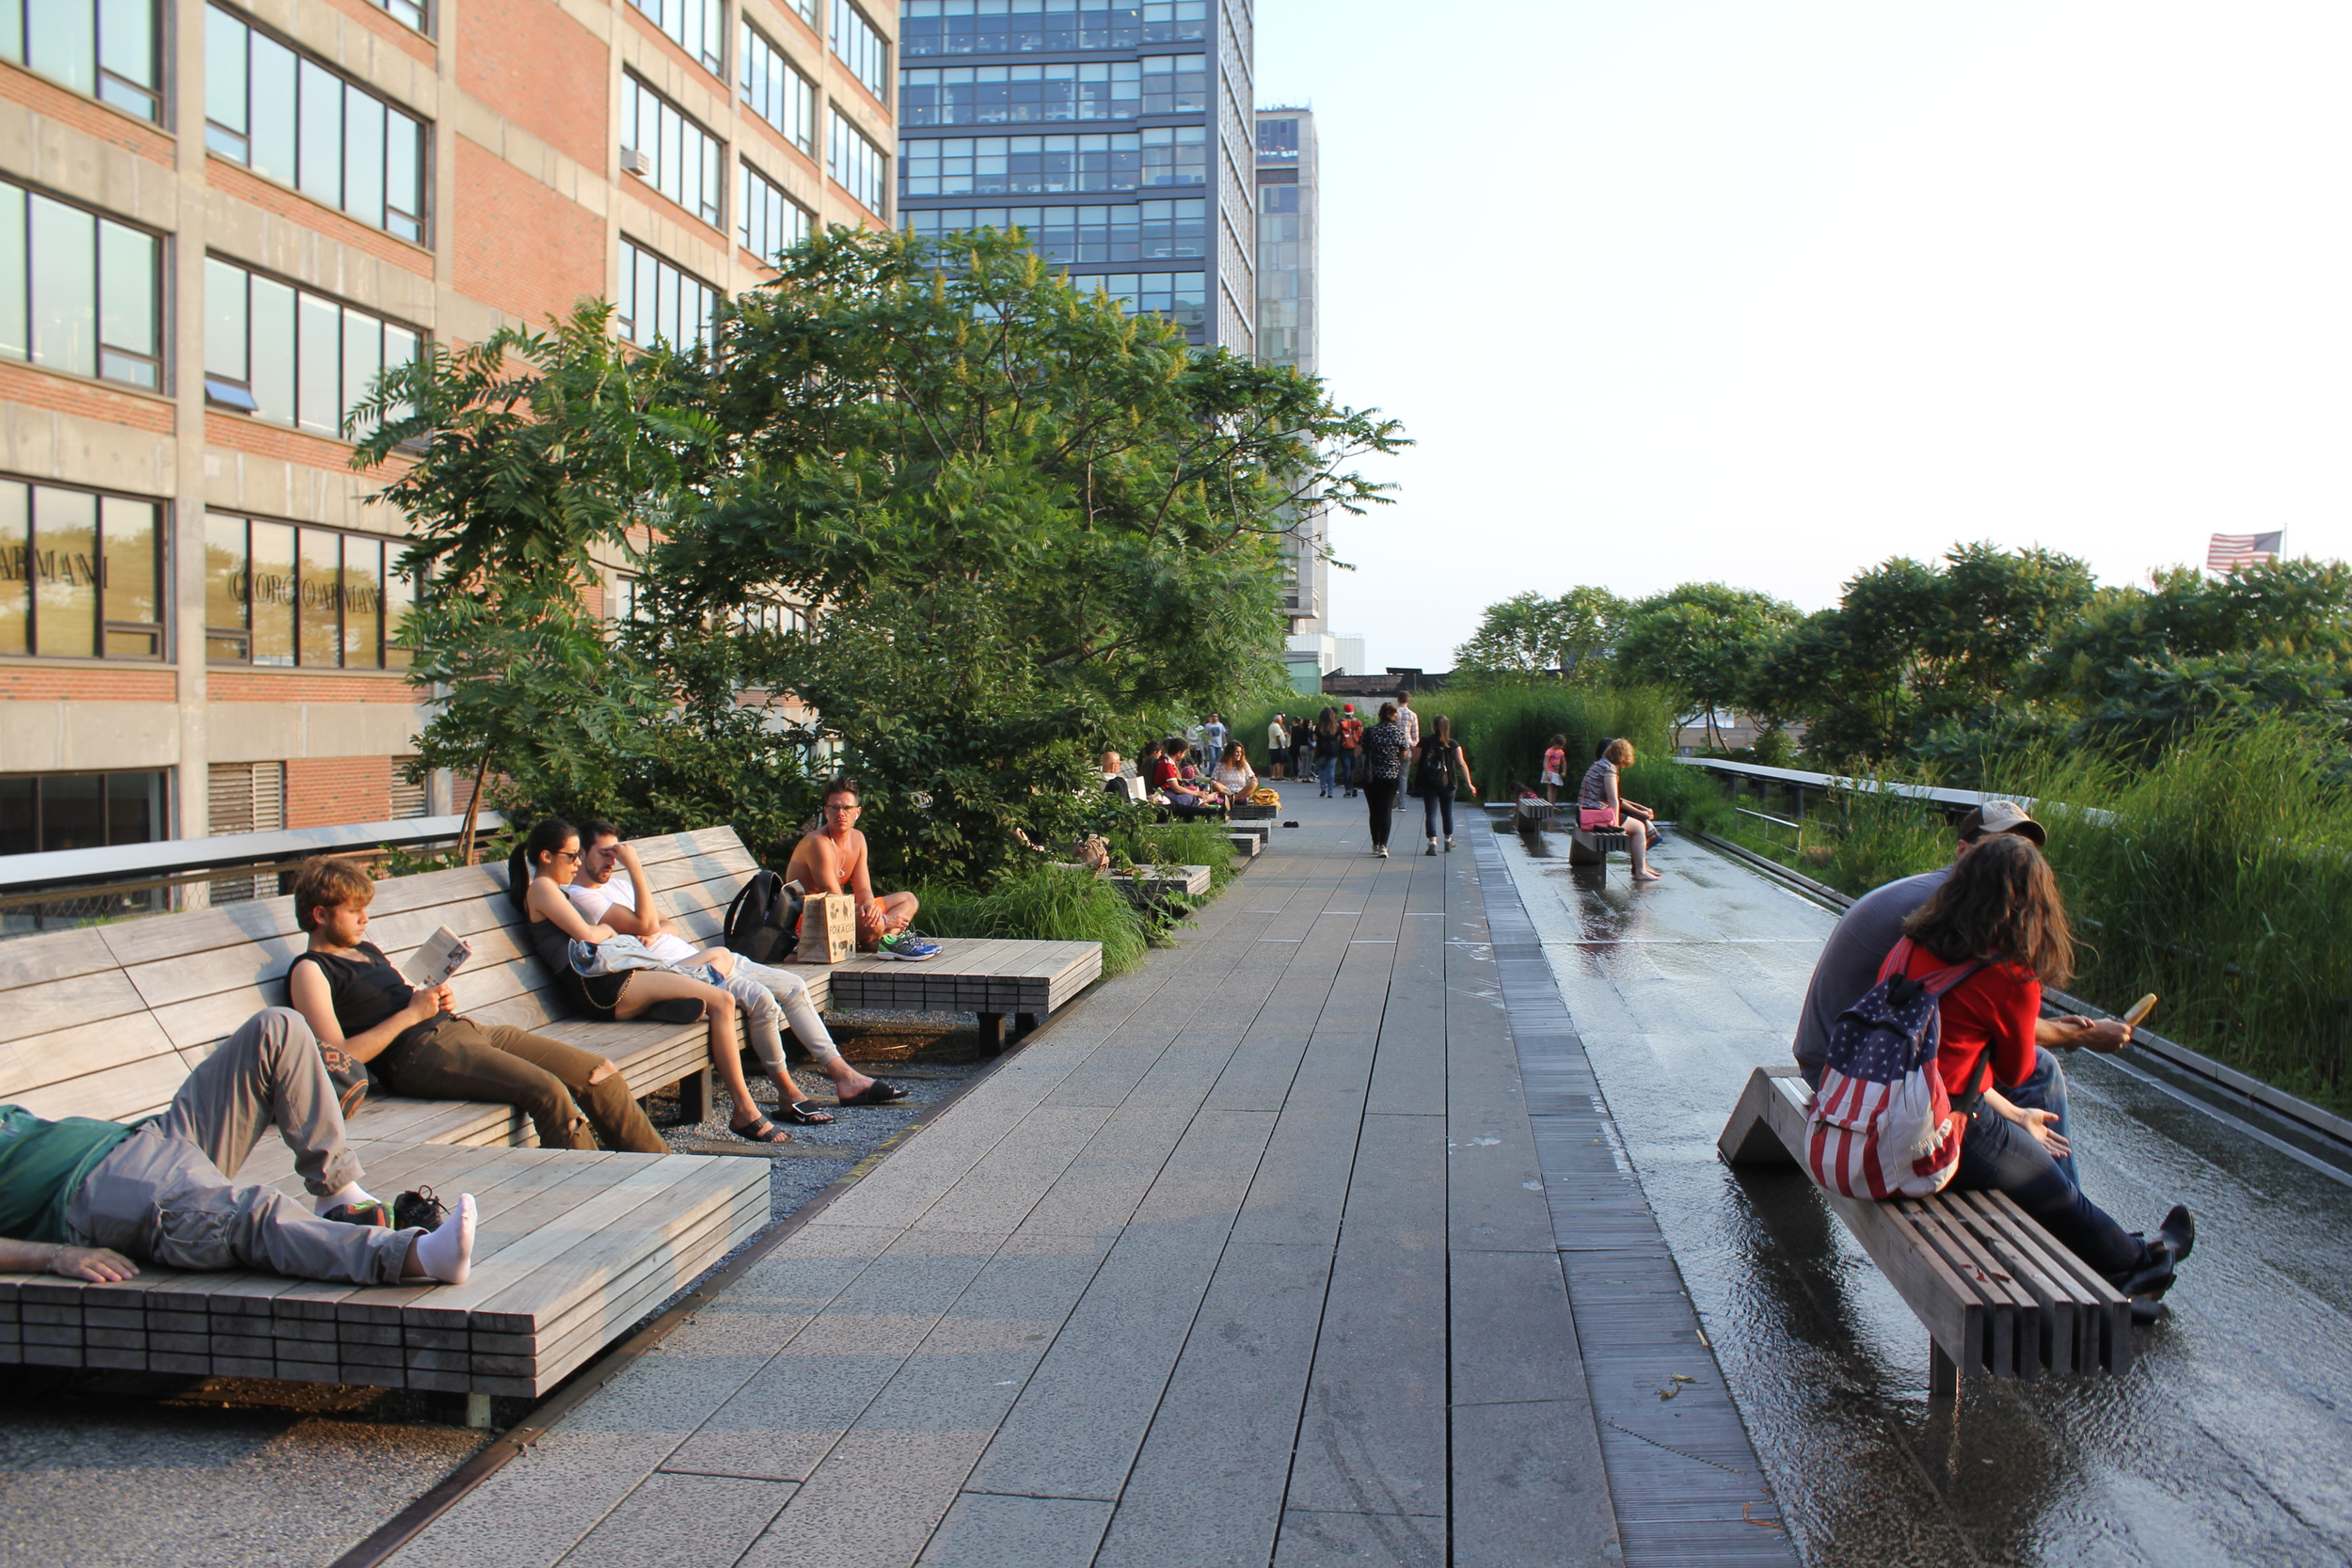 The Highline at sunset. Short but sweet. A different perspective of Midtown down to the Meat Packing District.